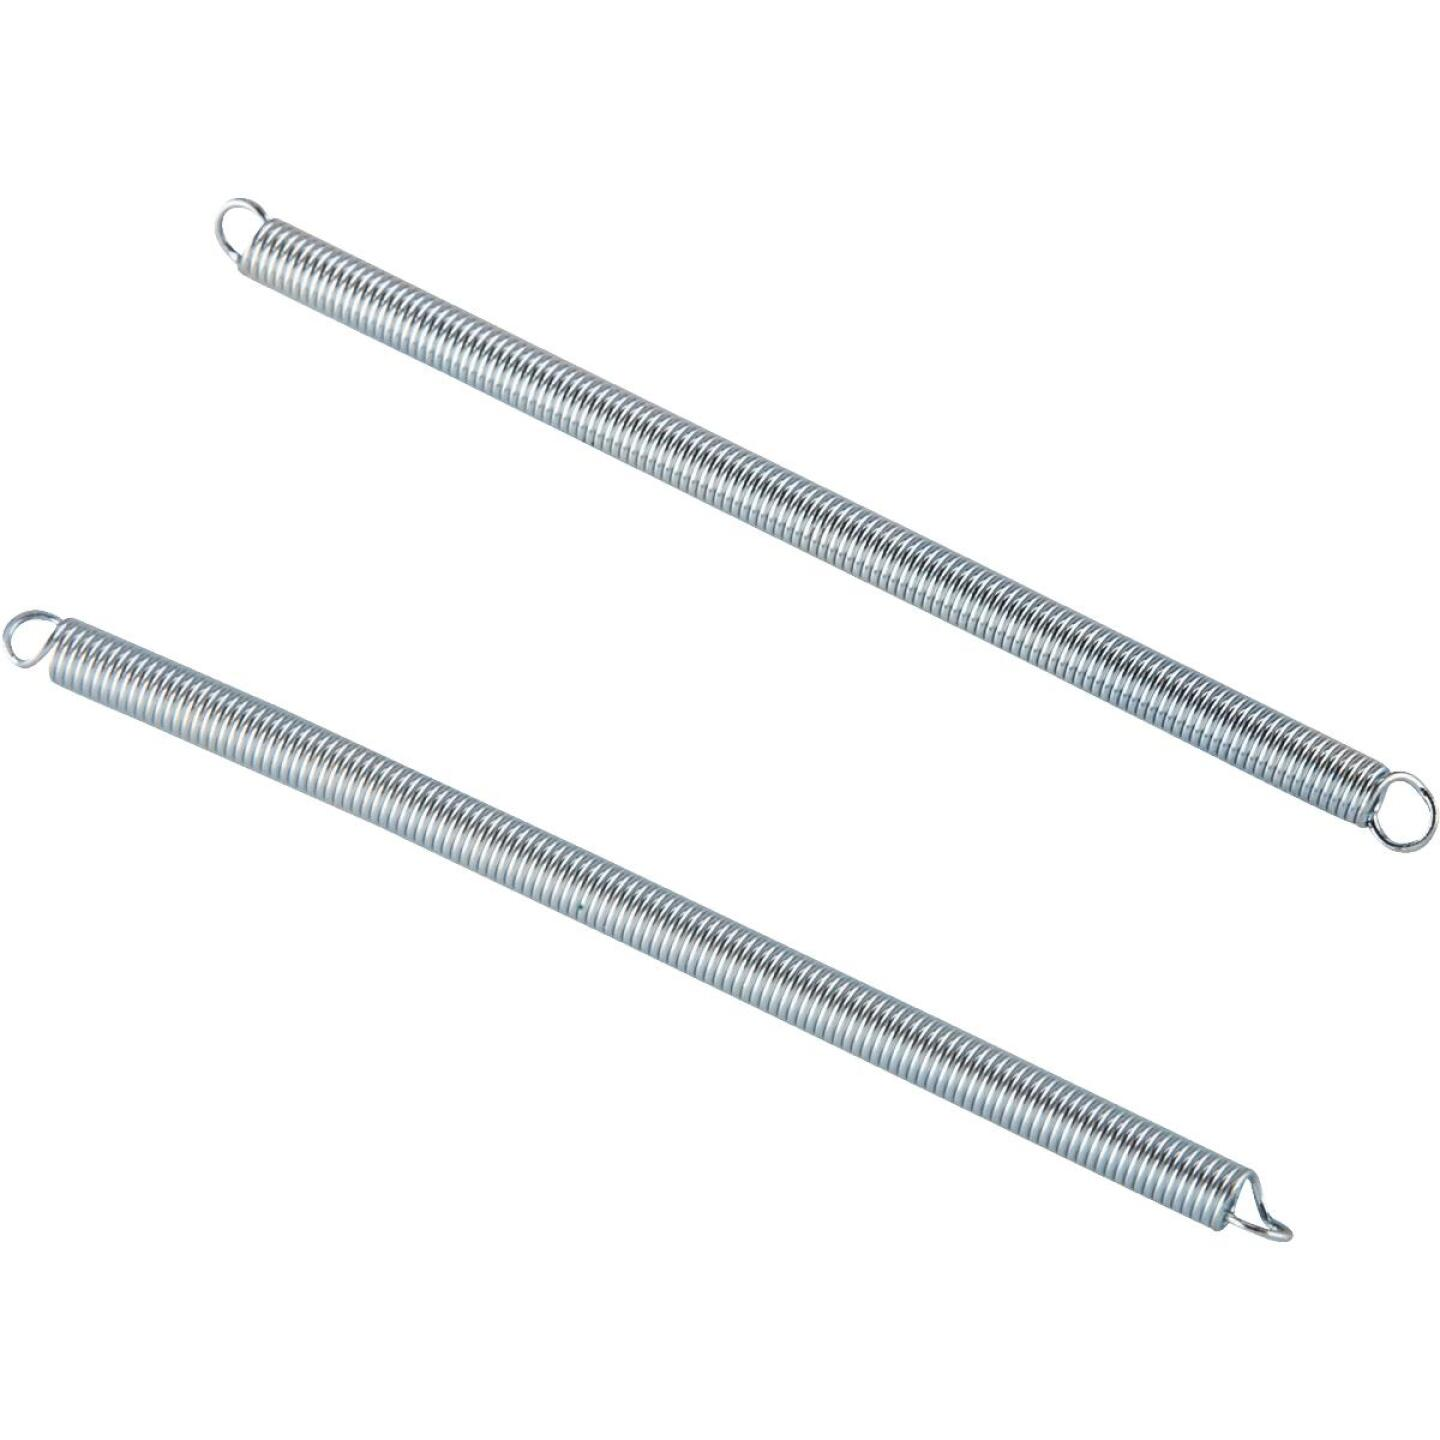 Century Spring 3-1/2 In. x 7/16 In. Extension Spring (2 Count) Image 1